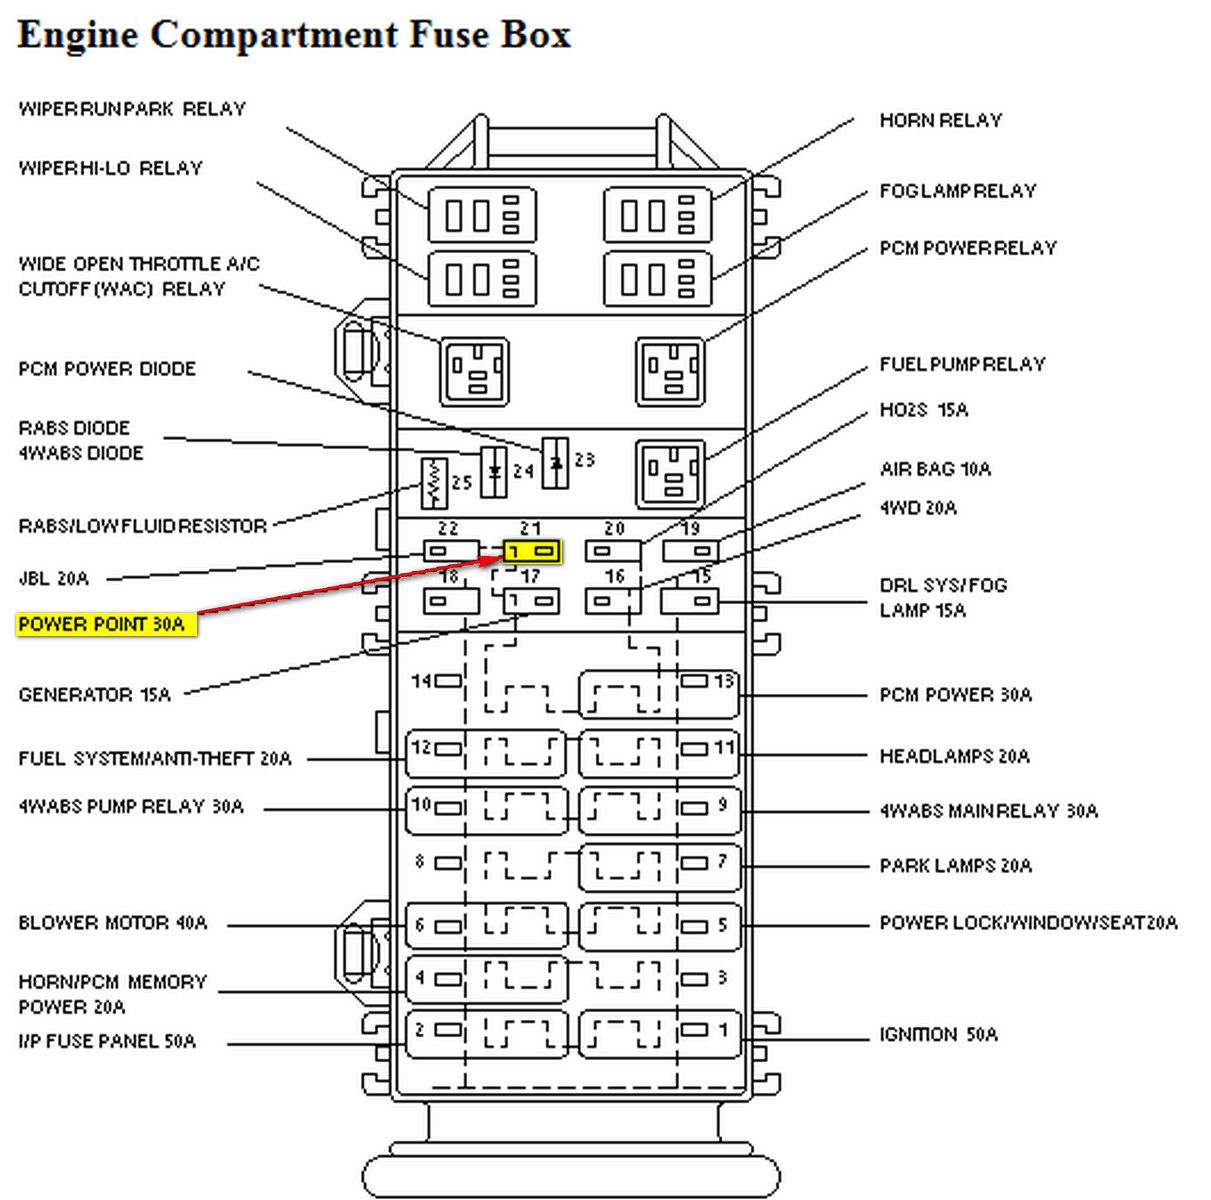 medium resolution of 1997 ford explorer headlight fuse box diagram wiring diagrams scematic 1997 ford explorer xlt 4x4 1997 ford explorer diagram